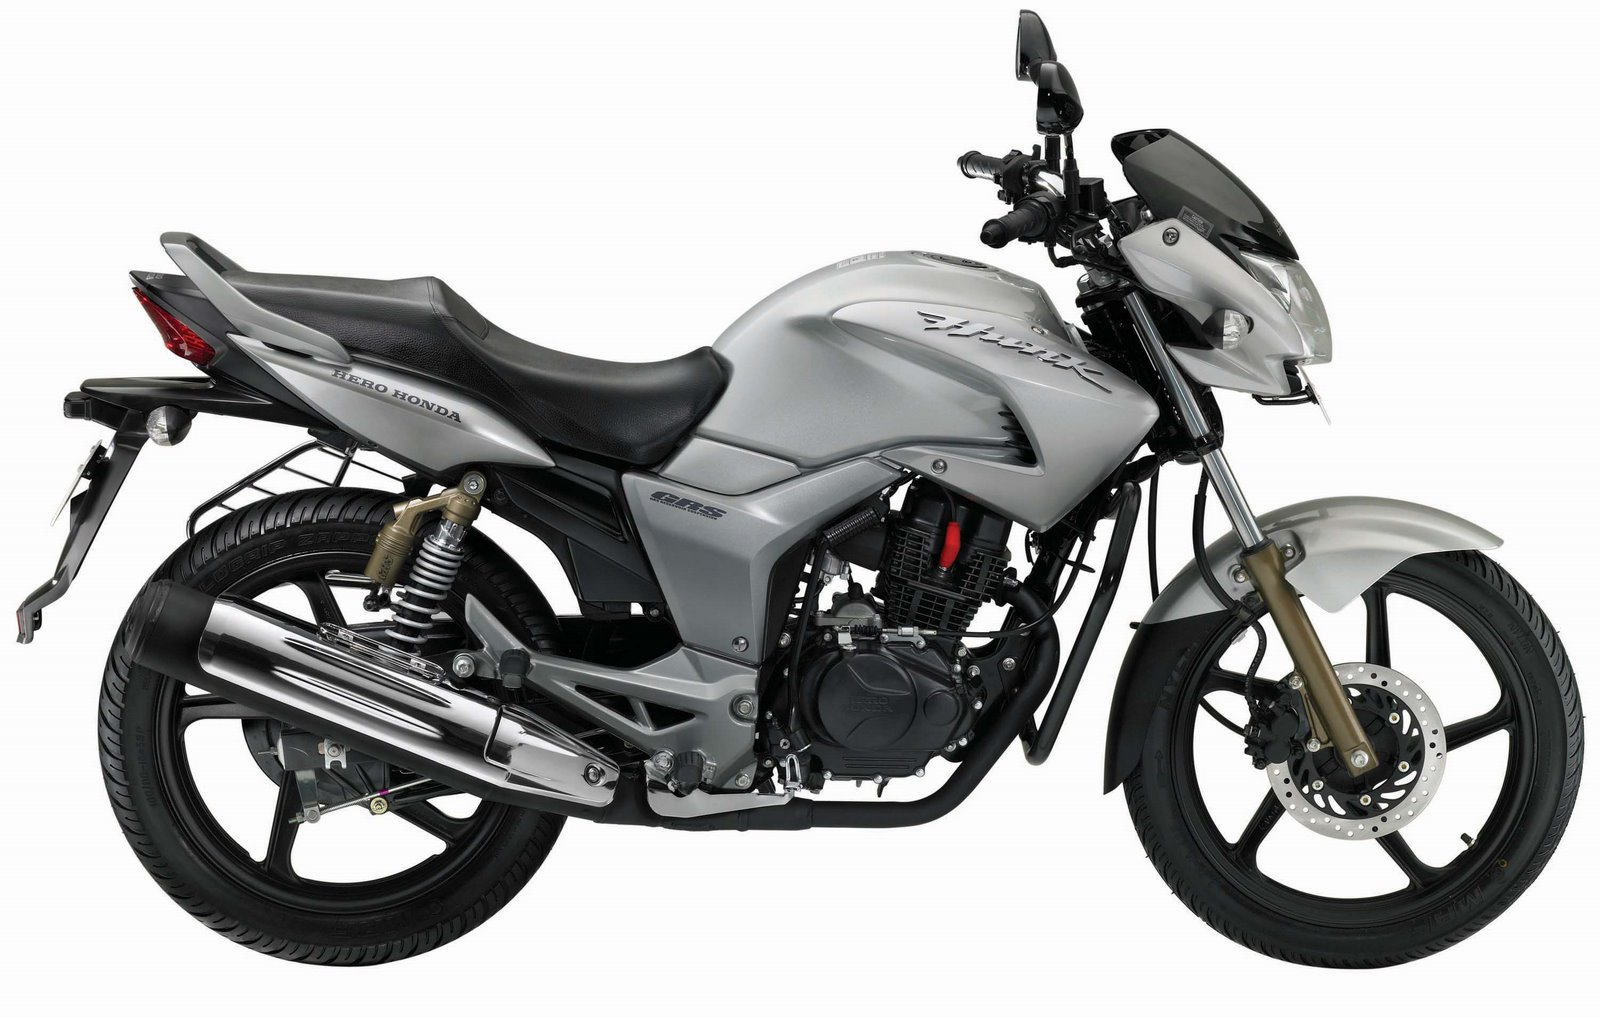 Hero Honda reduces Bike prices